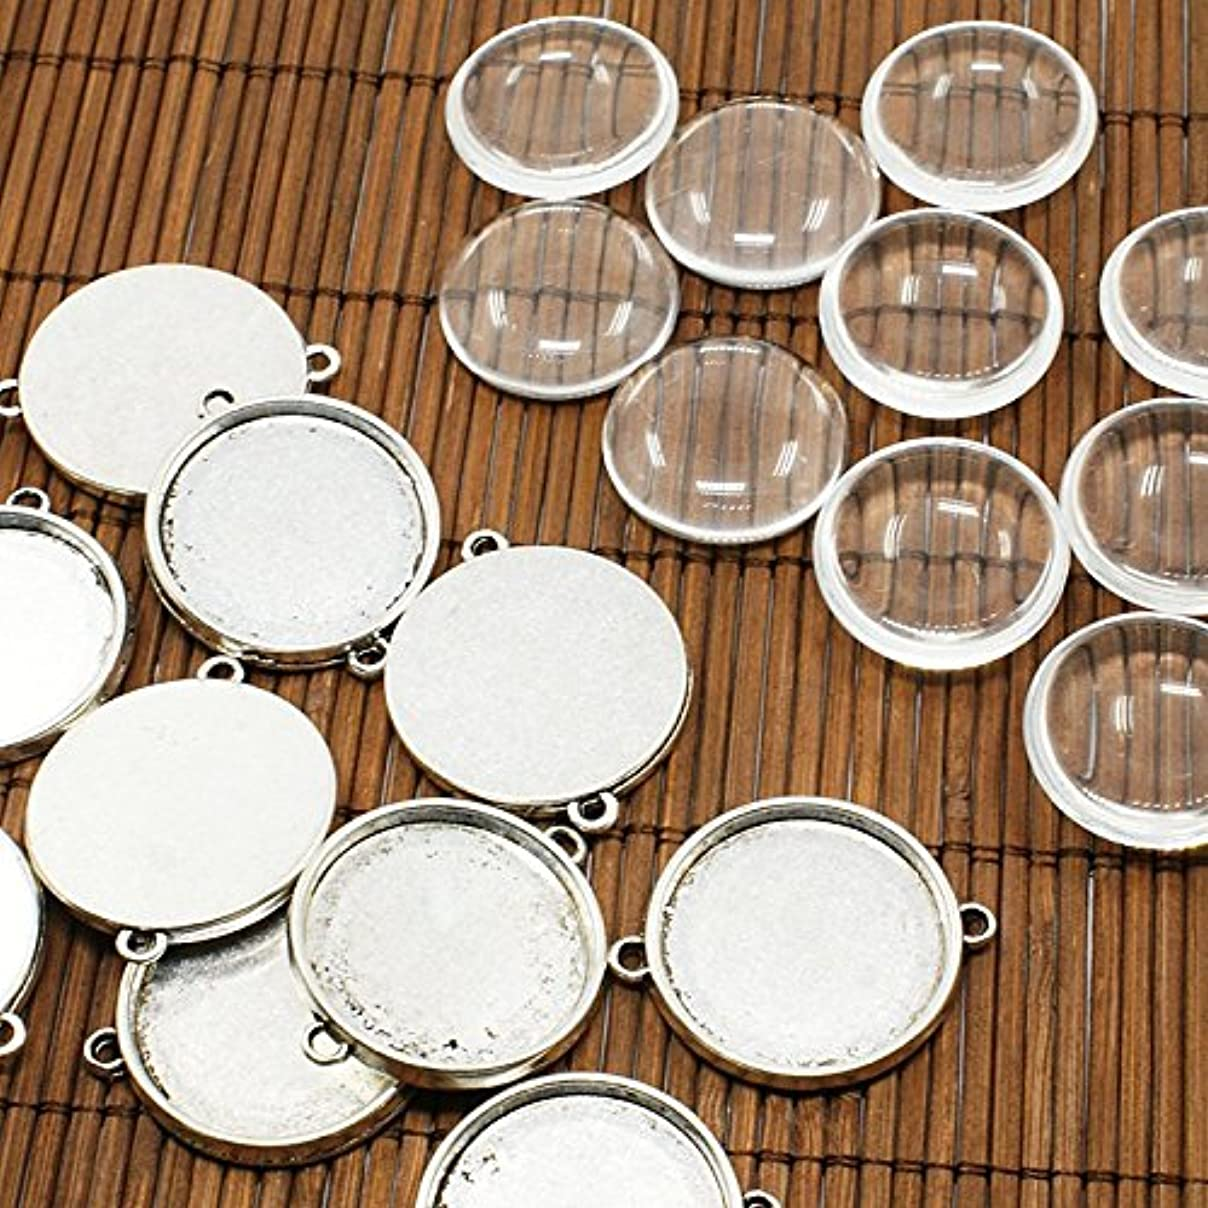 PEPPERLONELY Brand 10 Sets Silver Tone Alloy Cabochon Frame Setting Tray Connector with Round Glass Dome Tile Cabochon 25mm kv90467087523